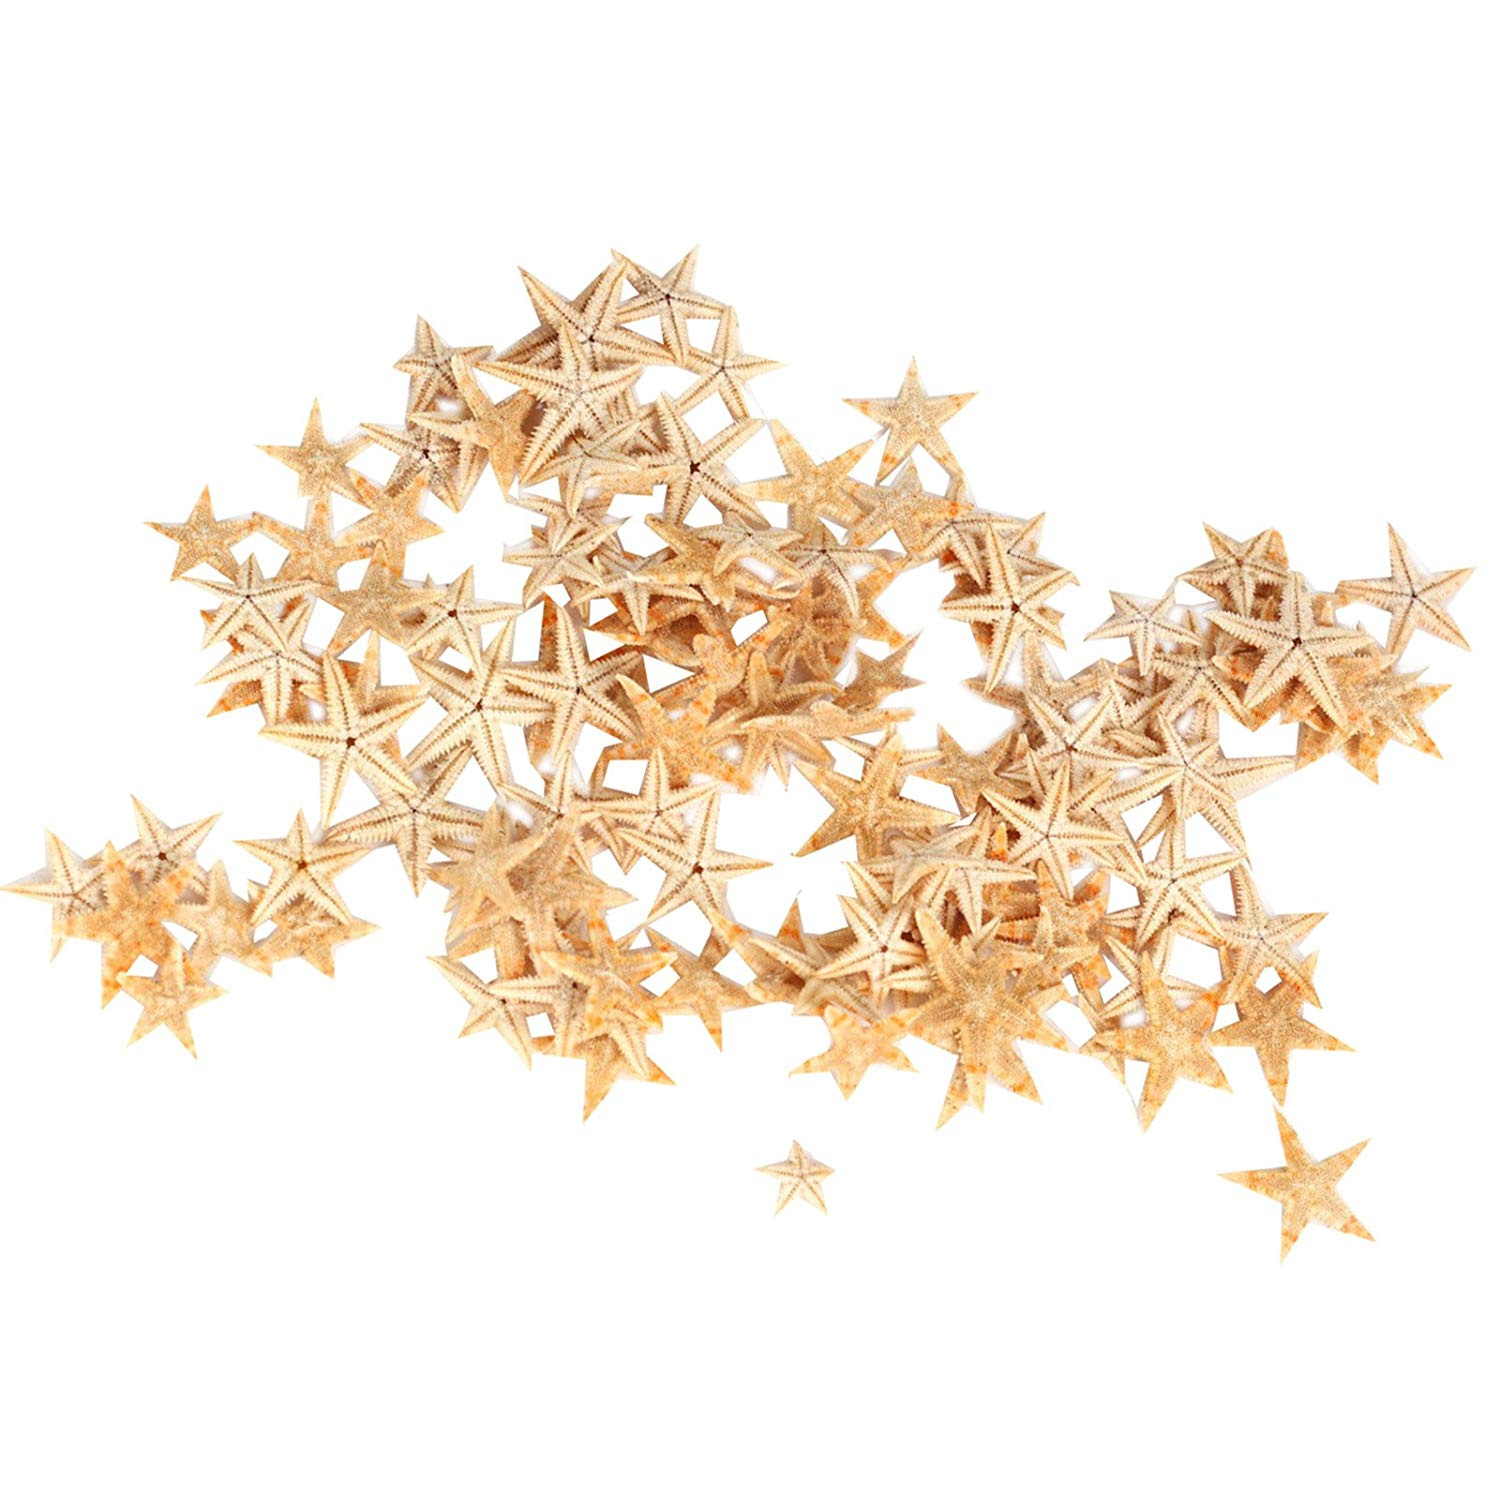 Small Starfish Star Sea Shell Beach Craft 0.4 Inch-1.2 Inch 90 Pcs